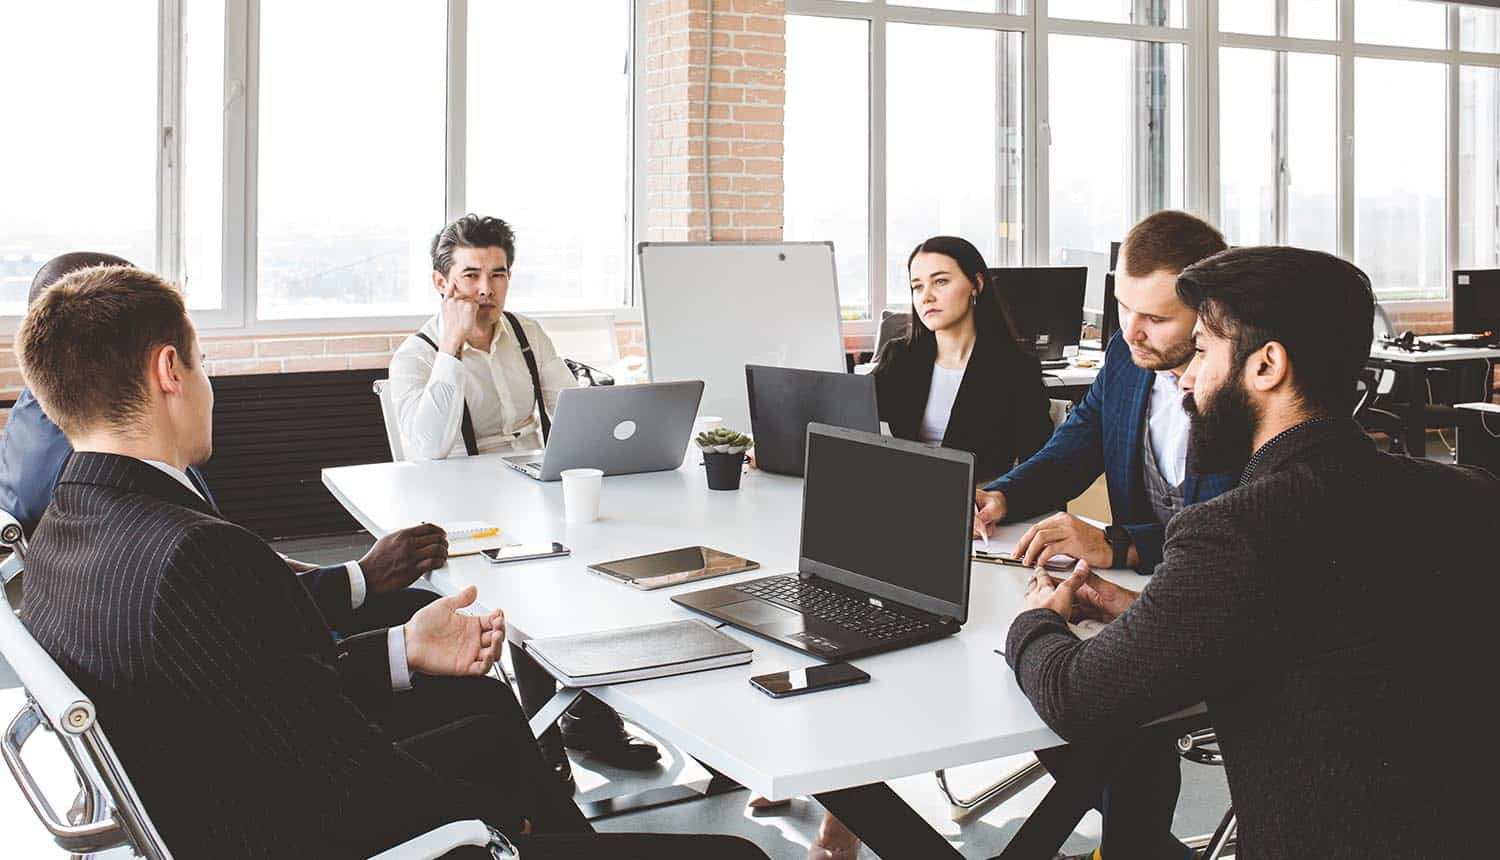 Group of business people working and communicating in boardroom